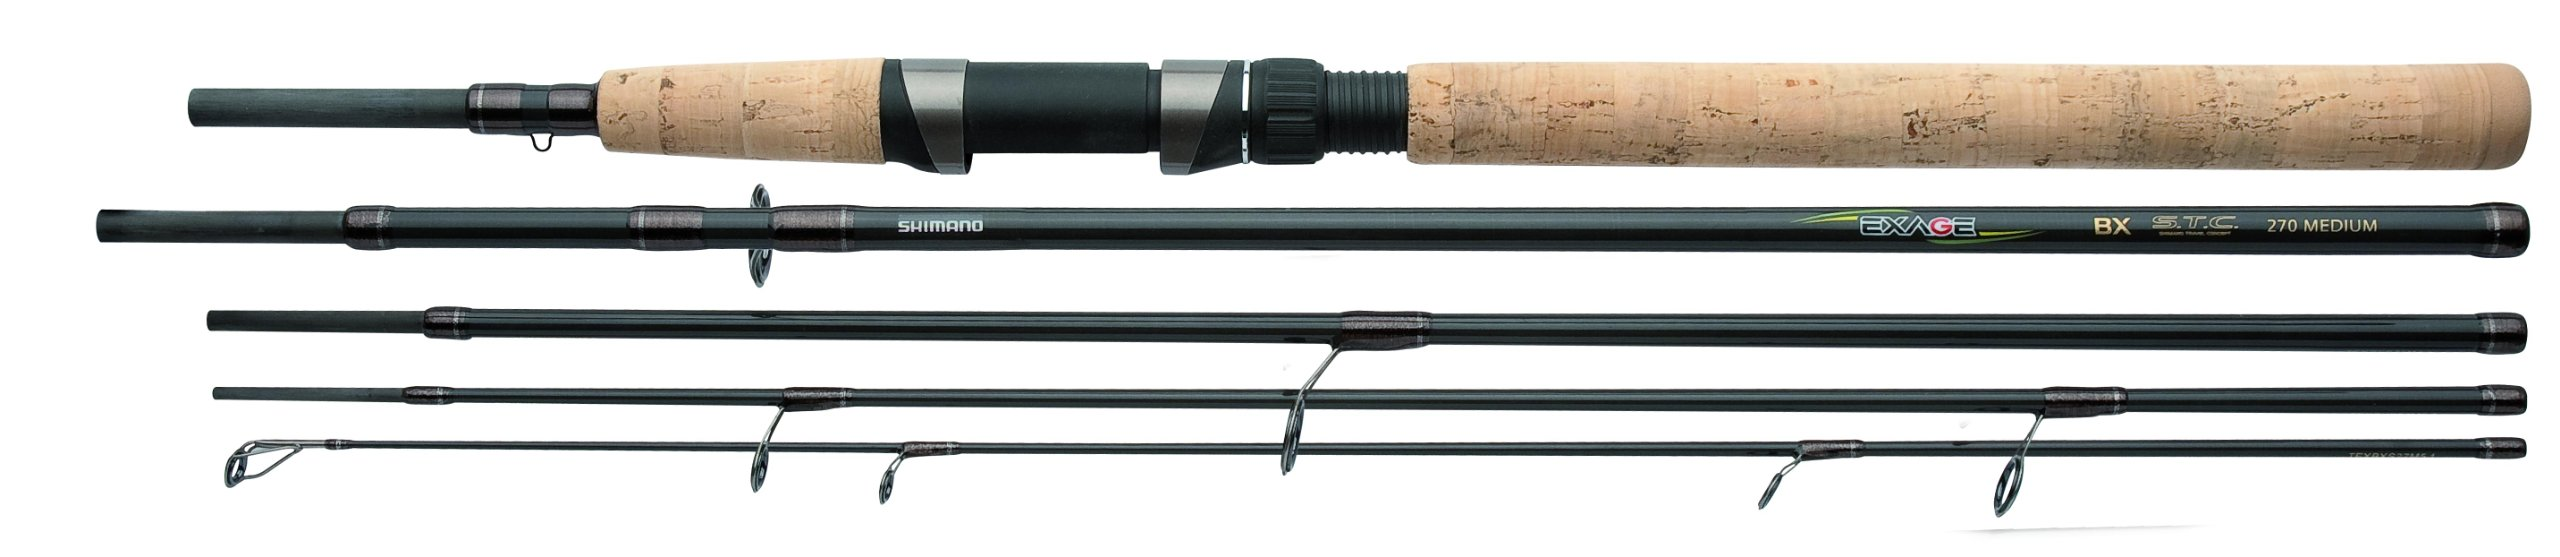 Shimano Exage BX STC Spinning 9 Feet, Castingweight 1.75 - 3.50 ounce, Travel Spinning Fishing Rod, TEXBXS27XH5